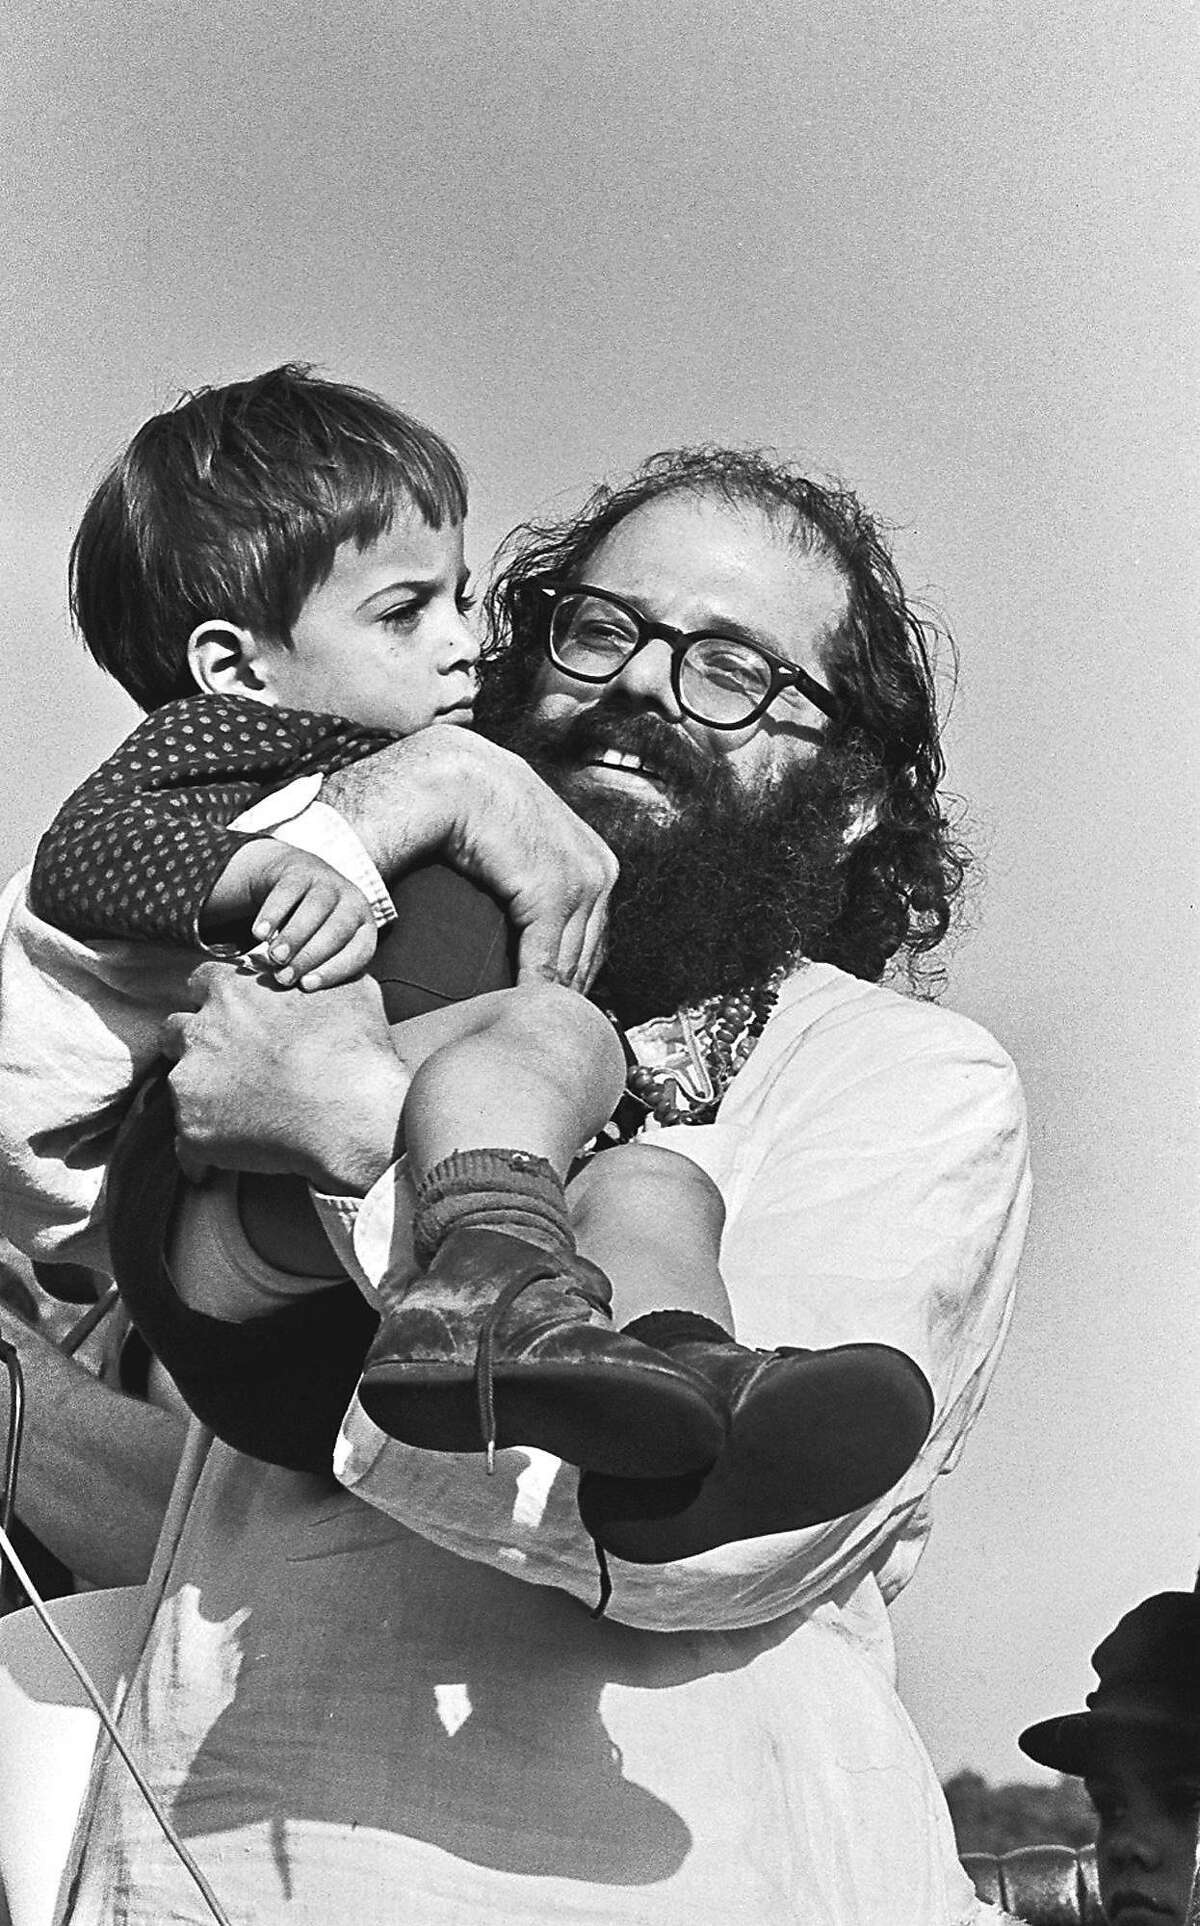 ** ADVANCE FOR SUNDAY, JAN 14, 2007 ** FILE ** Allen Ginsberg is shown holding an unidentified child in San Francisco, Sunday, Jan. 15, 1967. Ginsberg was one of many 1960's icons who appeared at the Human Be-in, a counterculture event that unofficially launched San Francisco's summer of love. In many ways, the '60s as we now know them began on Jan. 14, 1967. And while the decade may have a new meaning for a generation contemplating retirement, those who were in Golden Gate Park that day agreed that neither they nor San Francisco have been the same since. (AP Photo/Steve Rees) ** NO SALES MAGS OUT ONLINE OUT NO TV ** Ran on: 01-14-2007 Allen Ginsberg holds a child at the Human Be-In in 1967. Ran on: 01-14-2007 Allen Ginsberg holds a child at the Human Be-In in 1967. Ran on: 01-05-2010 Poet Allen Ginsberg complained after the Human Be-In about news reports claiming the hippies had gone wild. 150 anniversary maybe